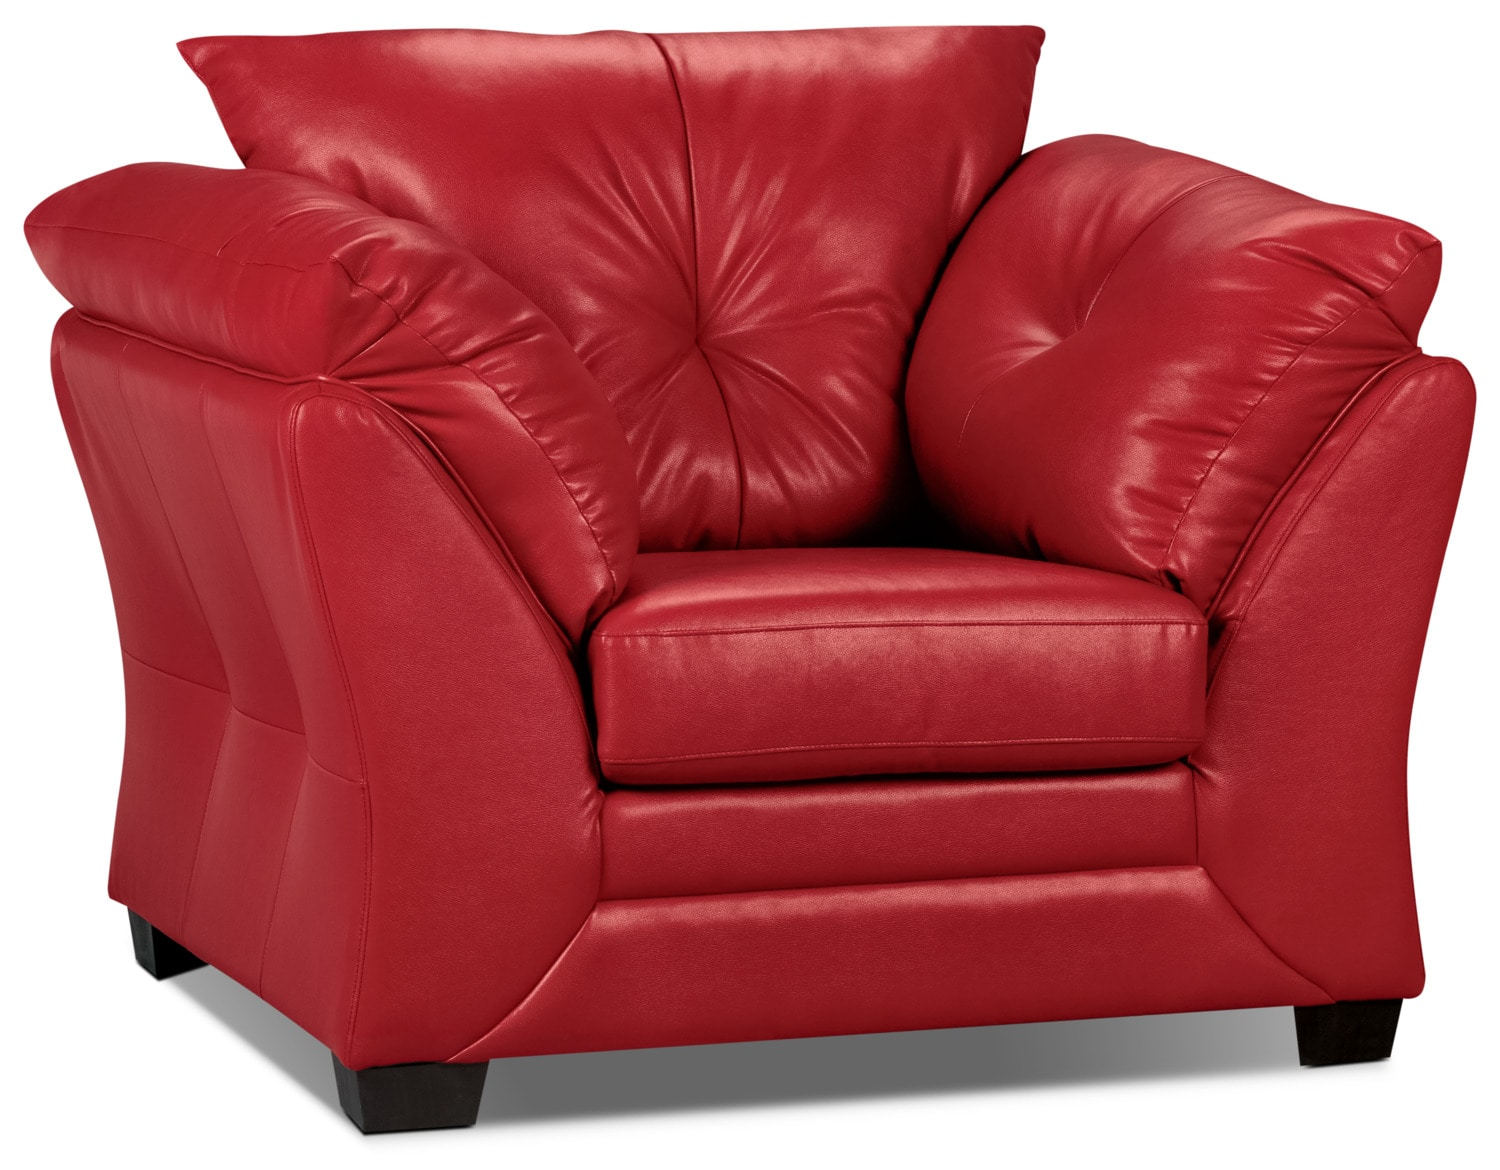 Living Room Furniture - Max Faux Leather Chair - Red